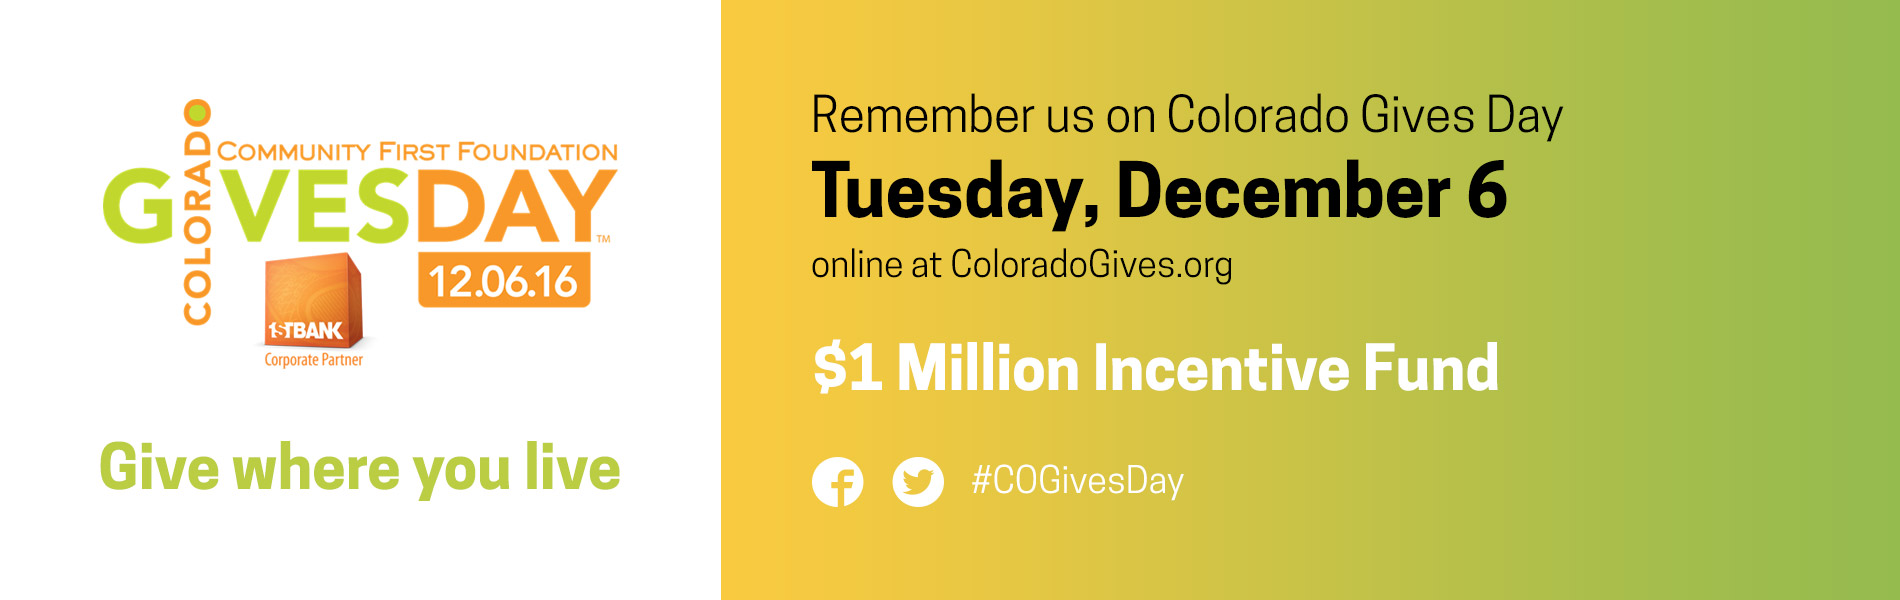 cogivesday2016